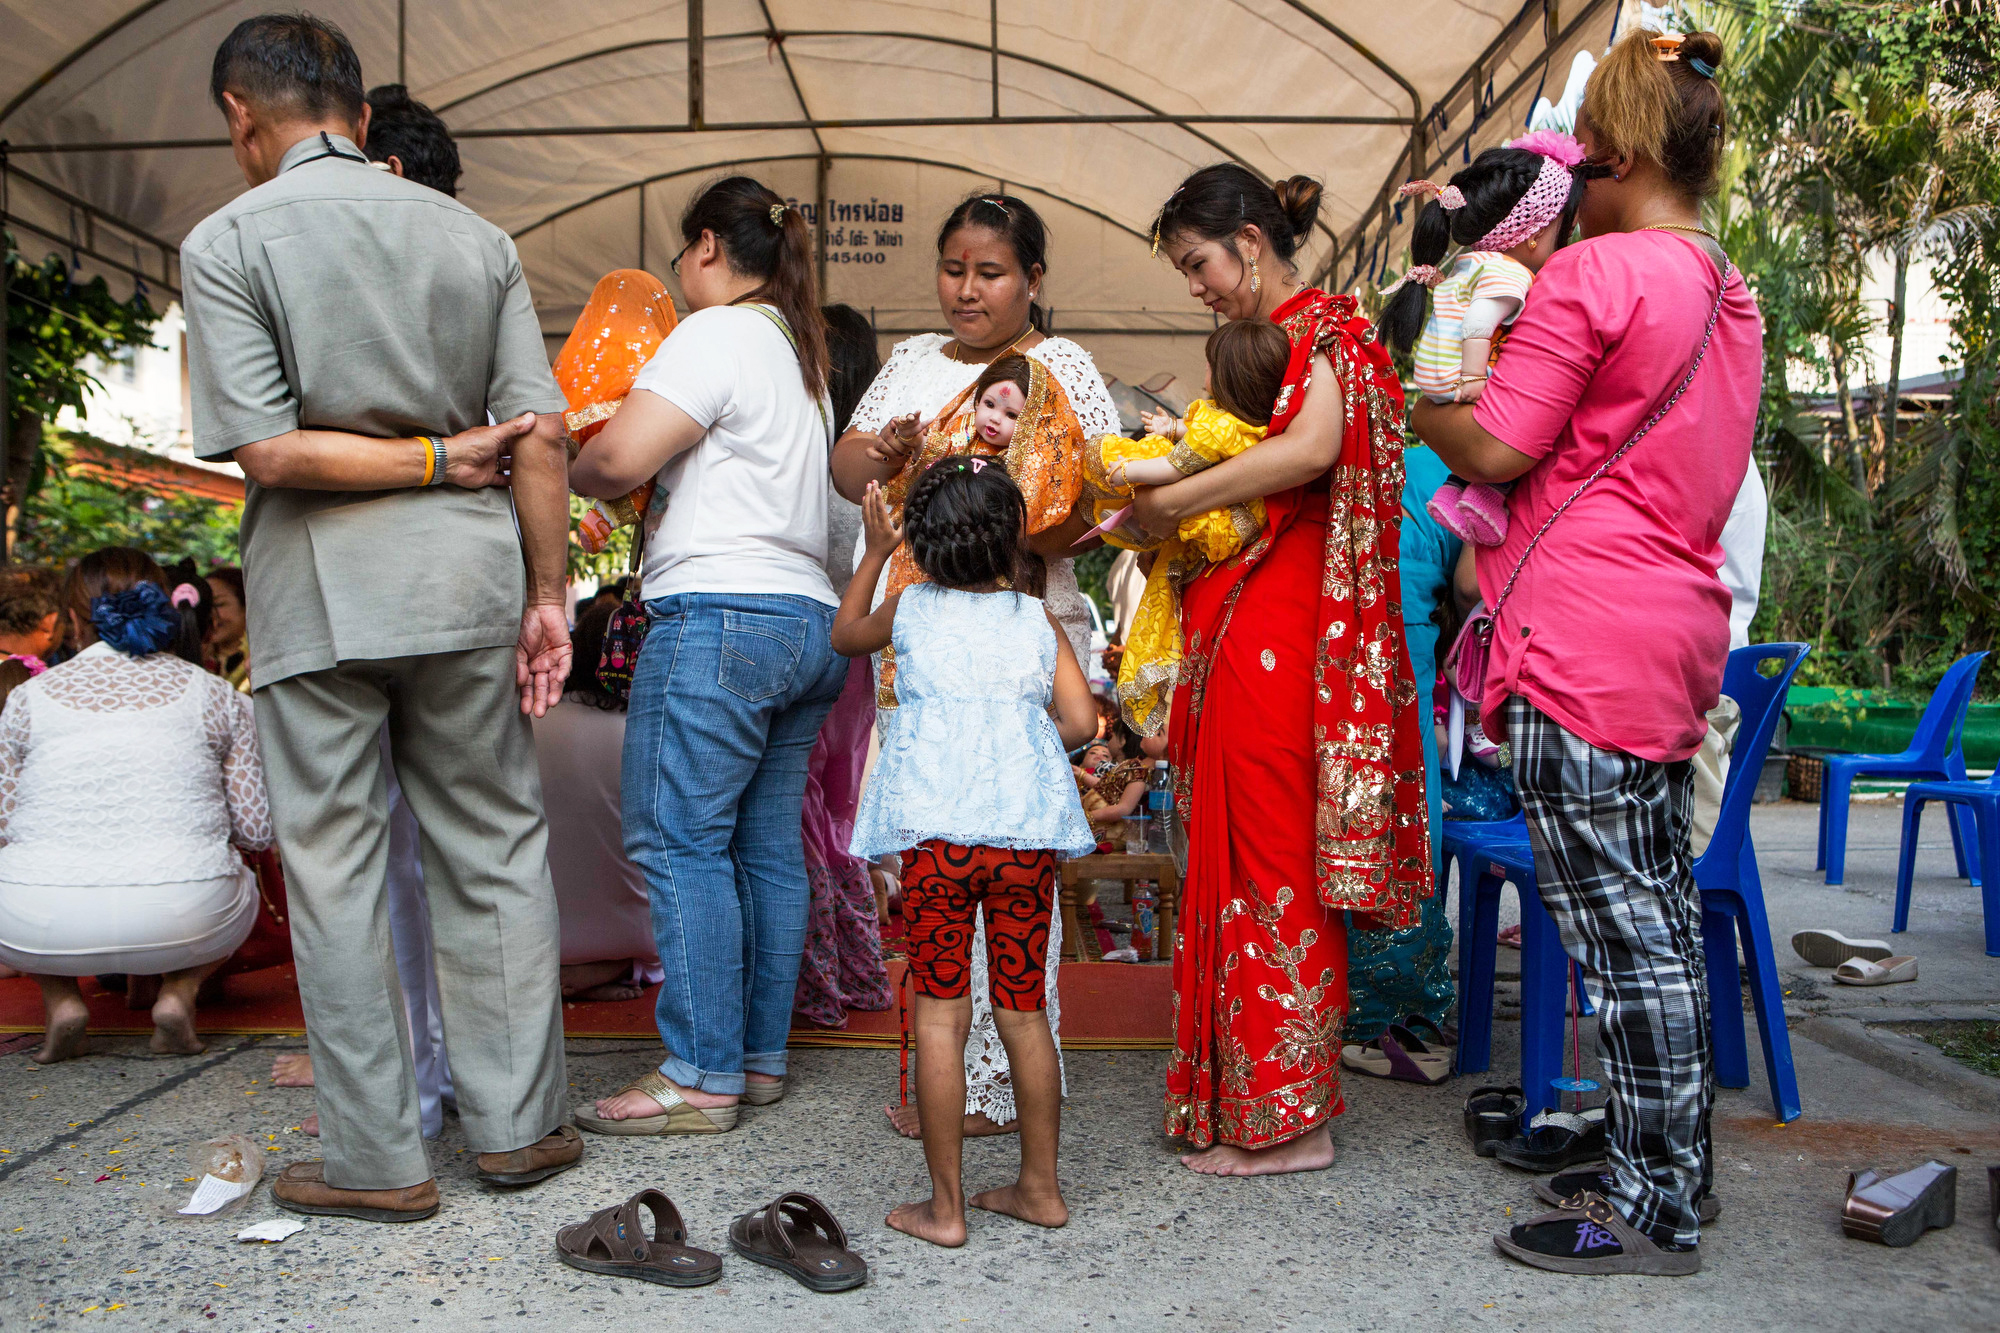 Attendees of Mama Ning's wai khru ceremony line up with their Luk Thep dolls for blessings in Bangkok on March 21, 2016.